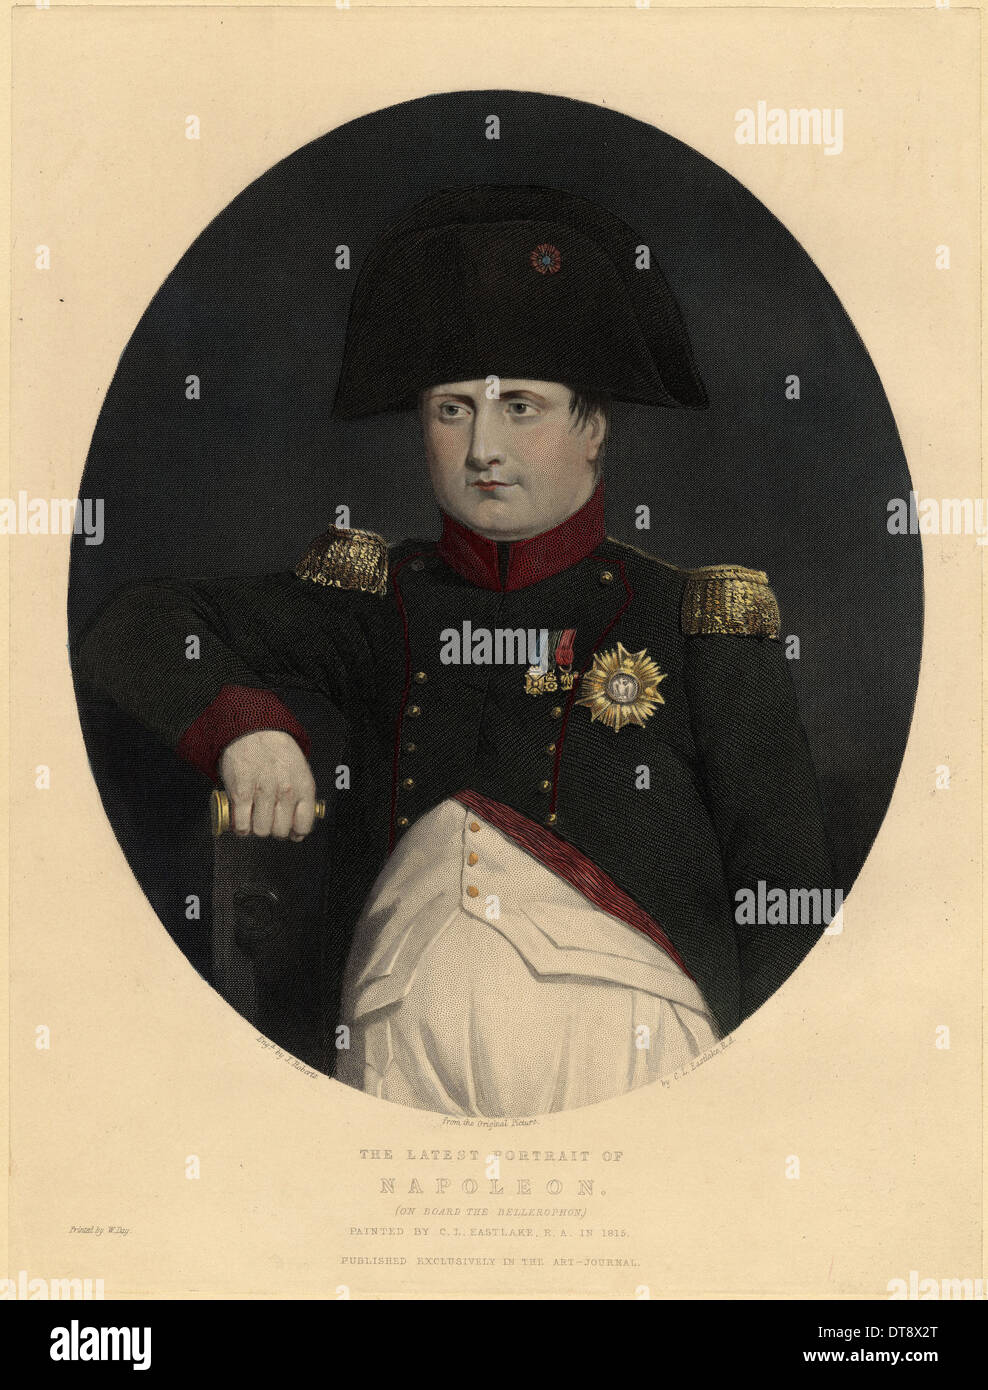 Latest portrait of Napoleon on board the Bellerophon, 1815. Artist: Eastlake, Sir Charles Lock (1793-1865) - Stock Image